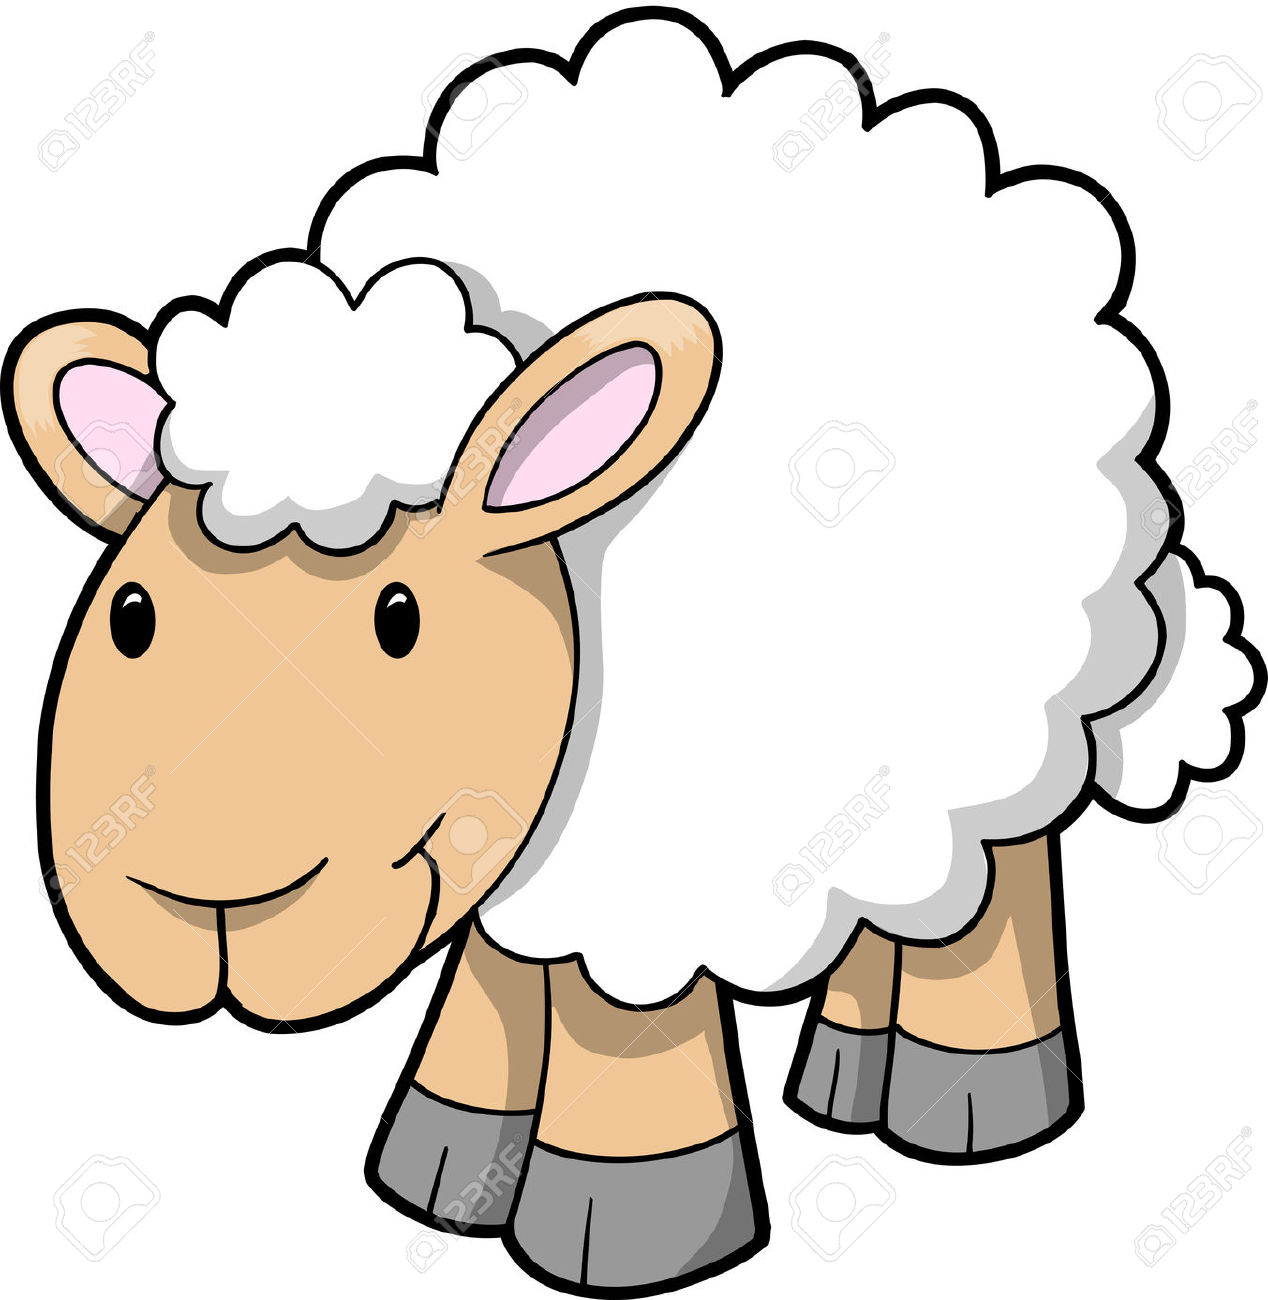 Sheep clipart cartoon #1